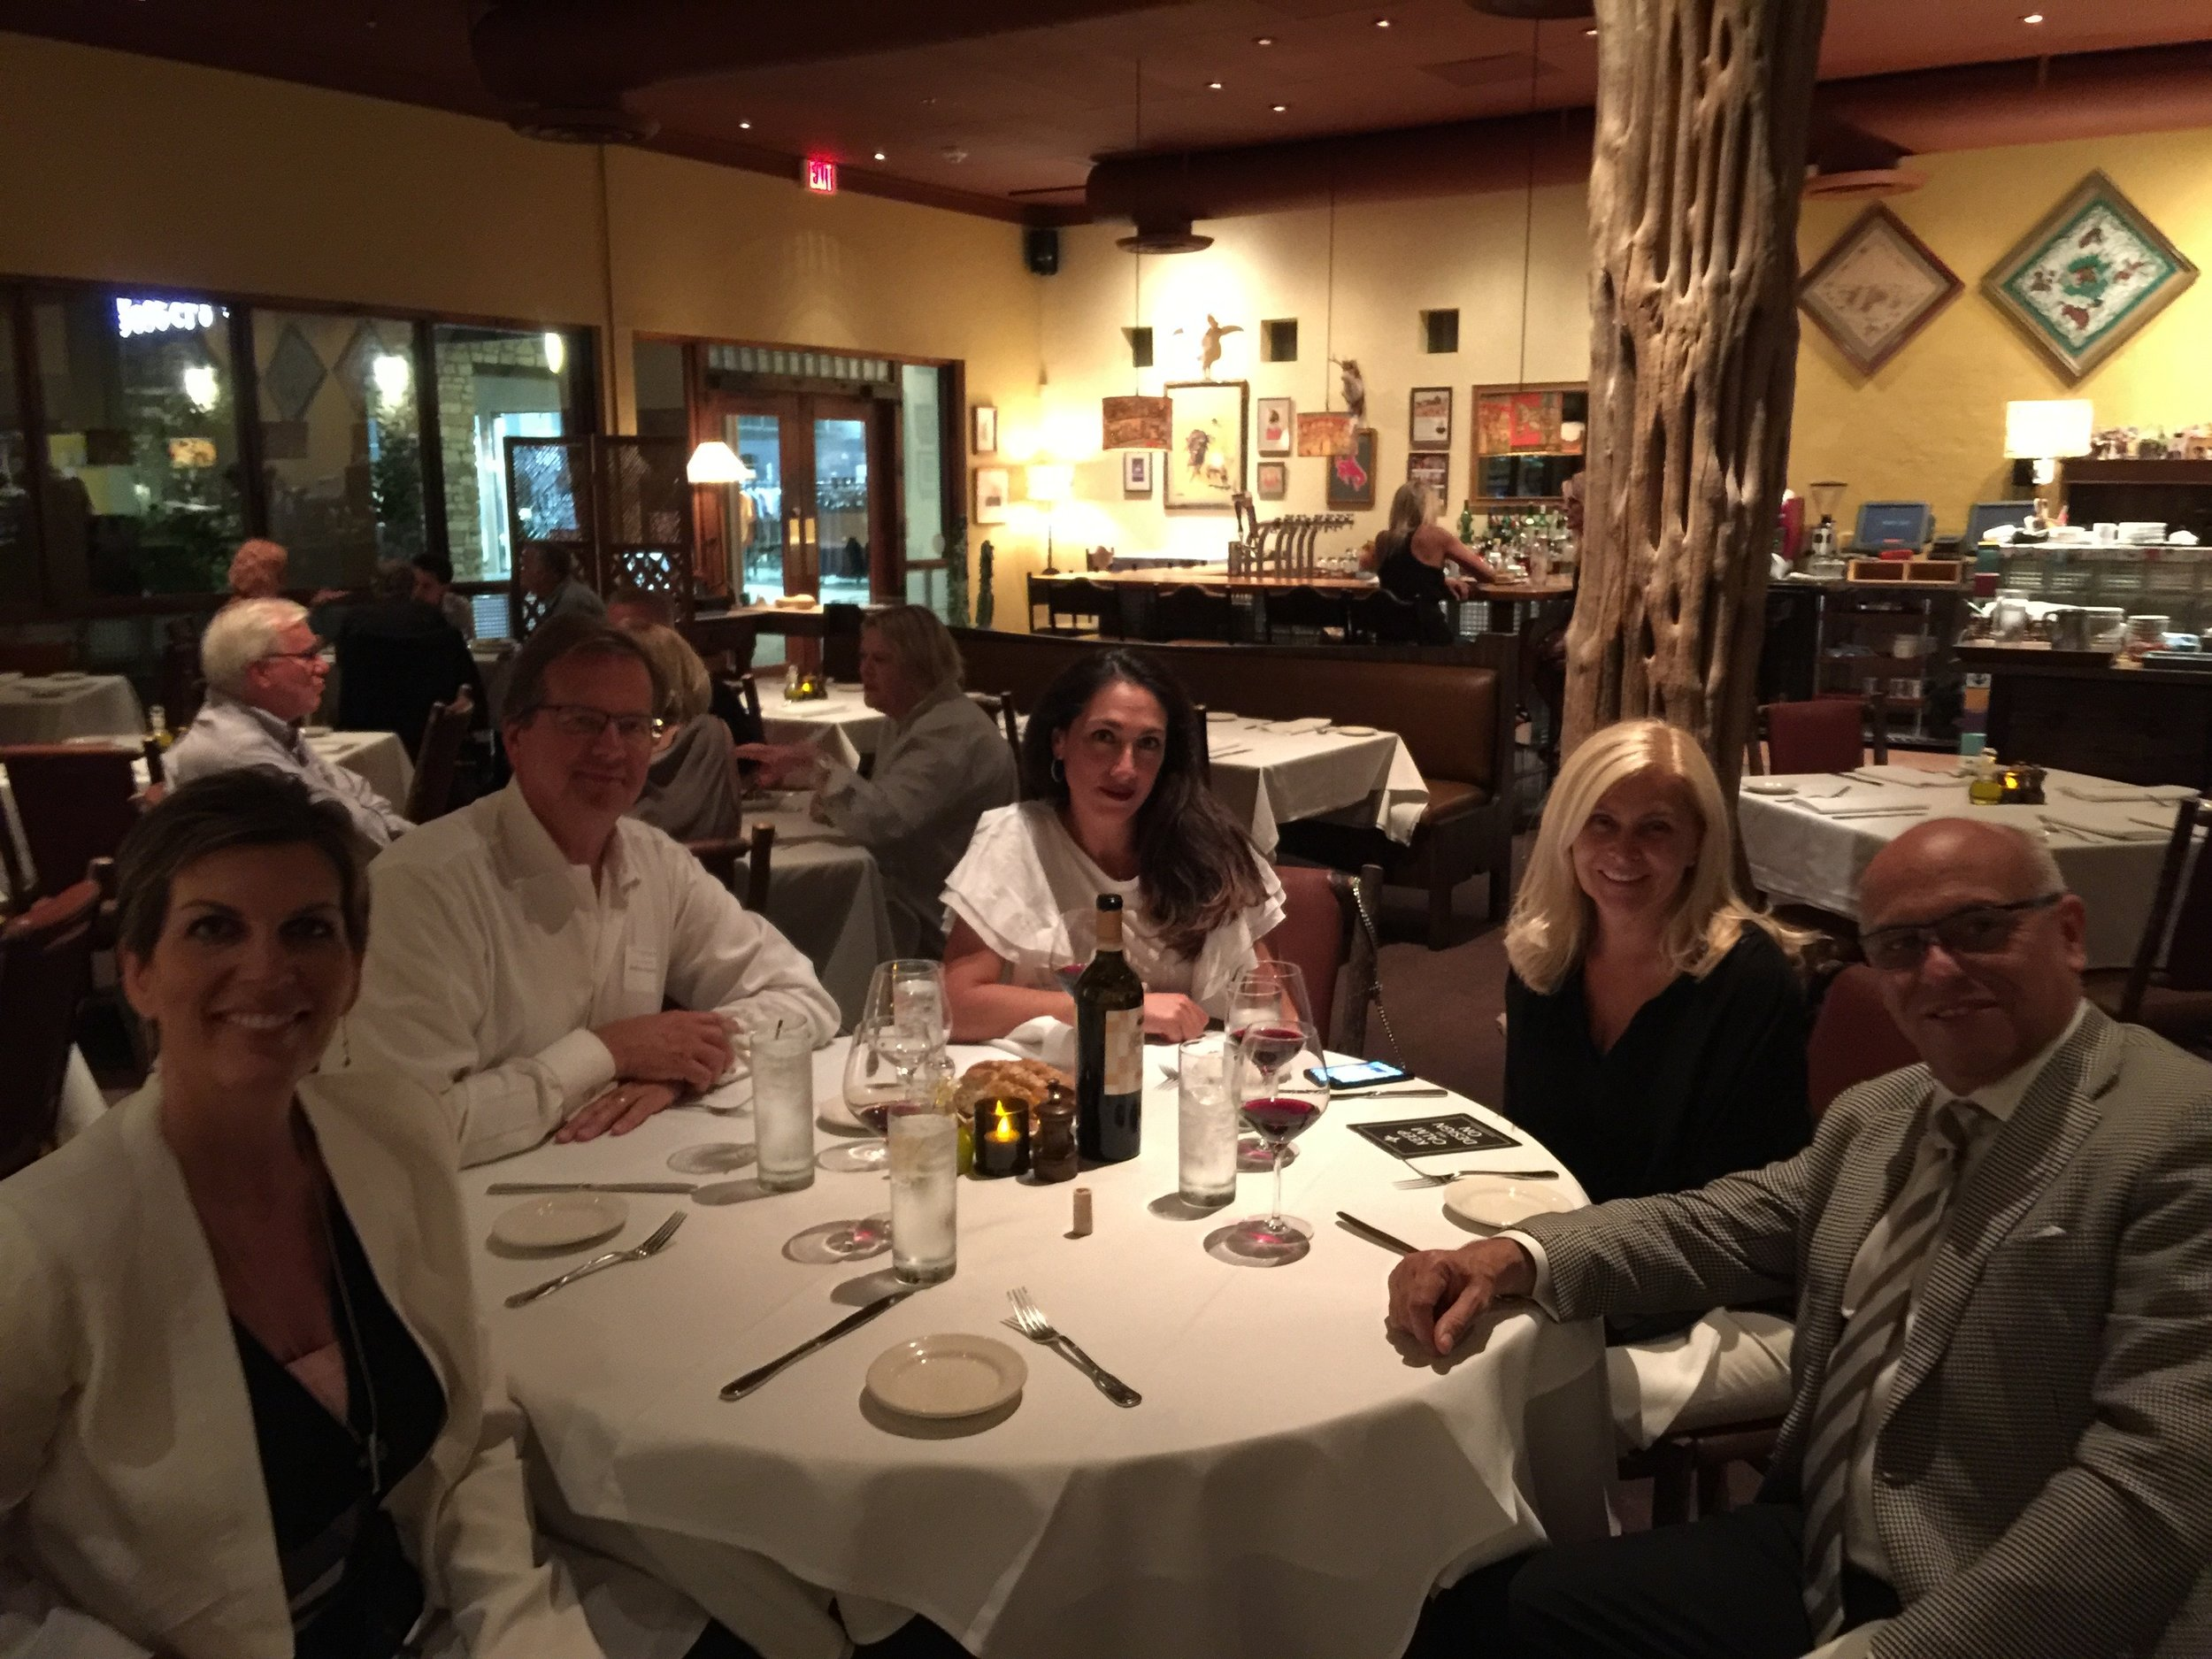 Post event dinner at Rancho Pinot with Isabel, Anthony and Gicela Dulcich from Long Beach and our sweet friend Rebecca.